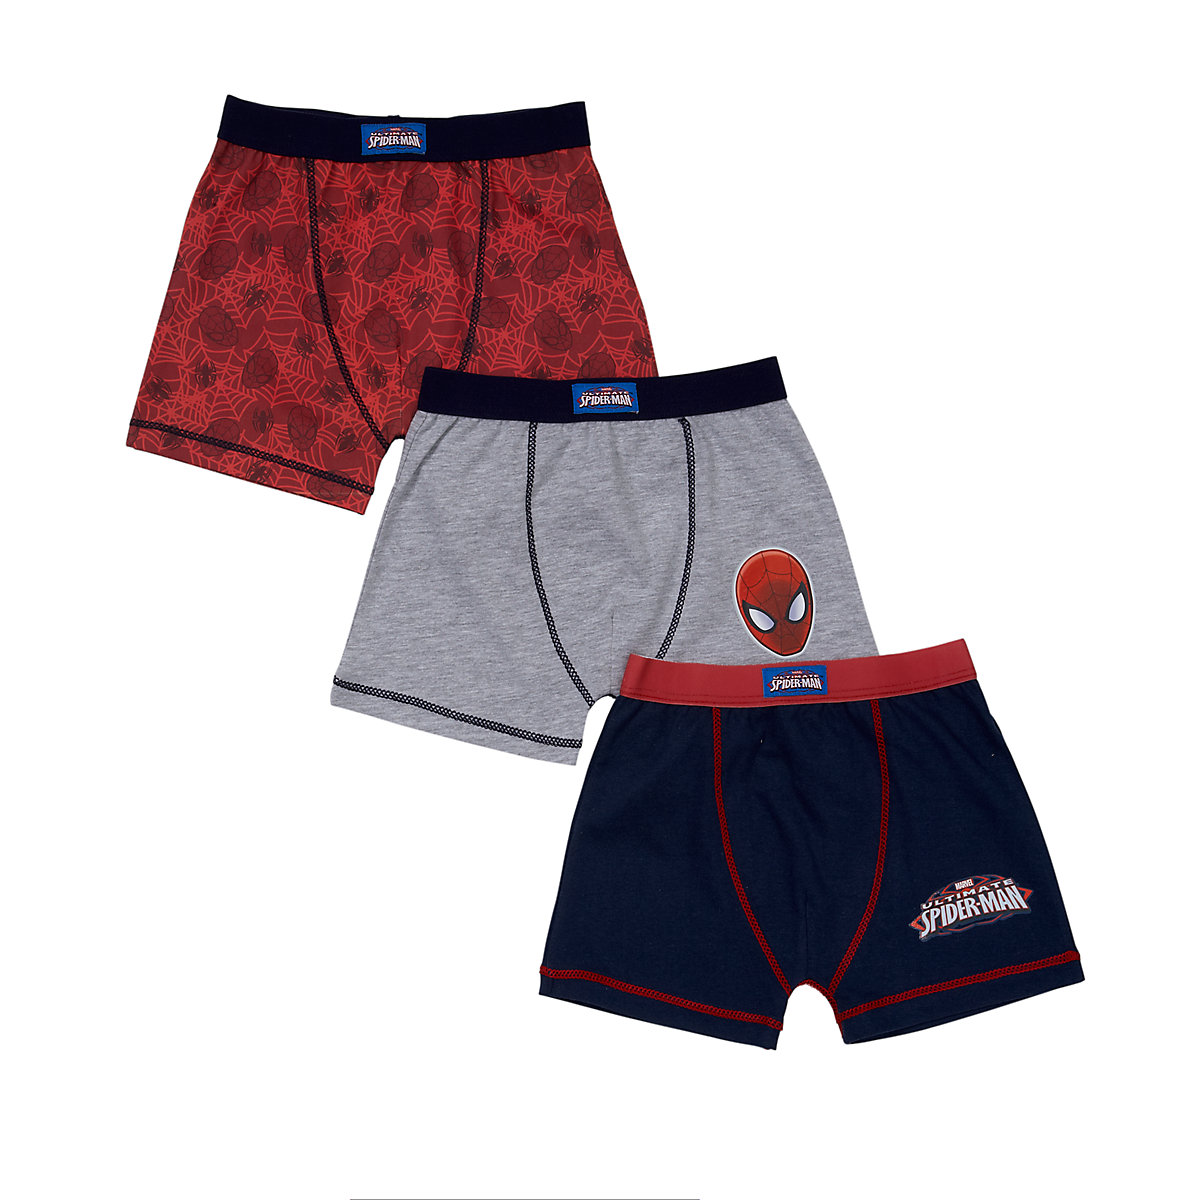 Spideman Trunks - 3 Pack